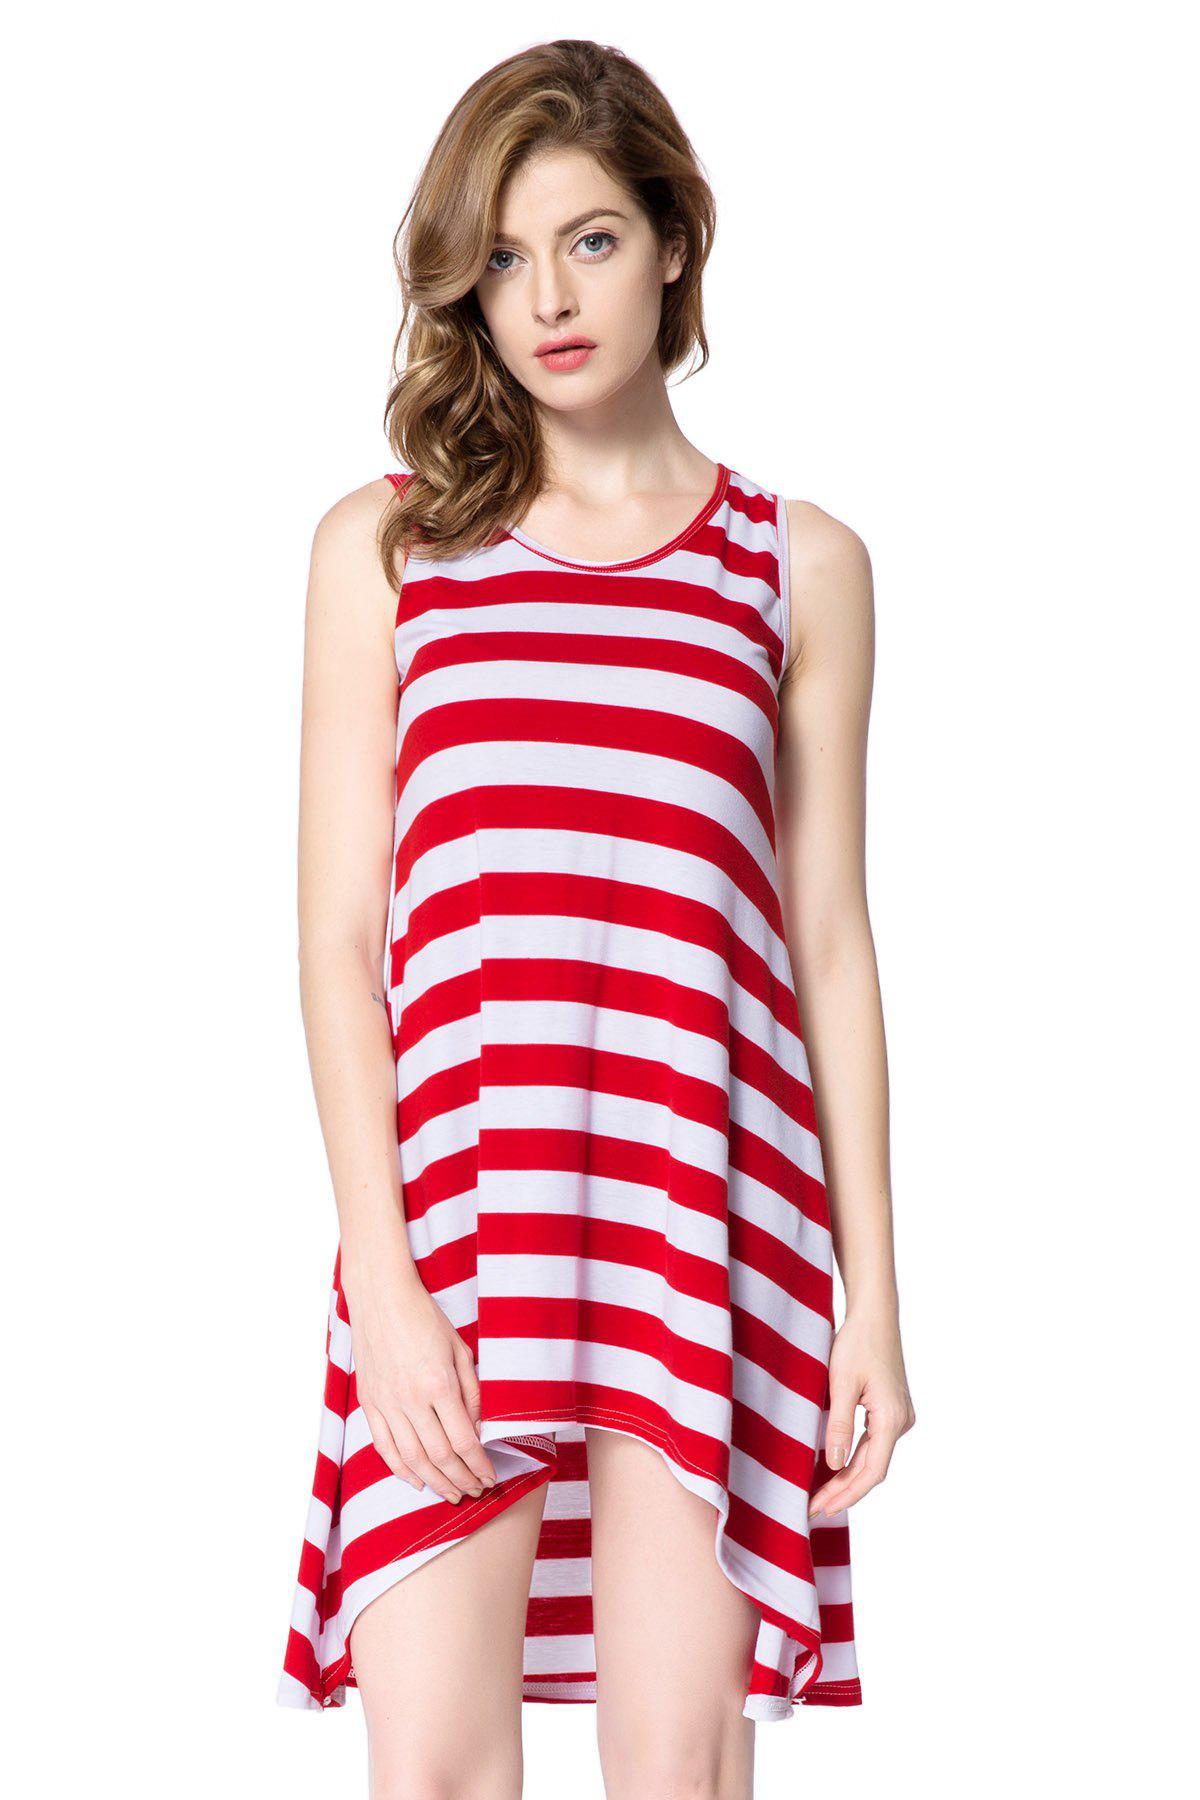 Casual Scoop Neck Sleeveless Loose-Fitting Striped Women's Dress